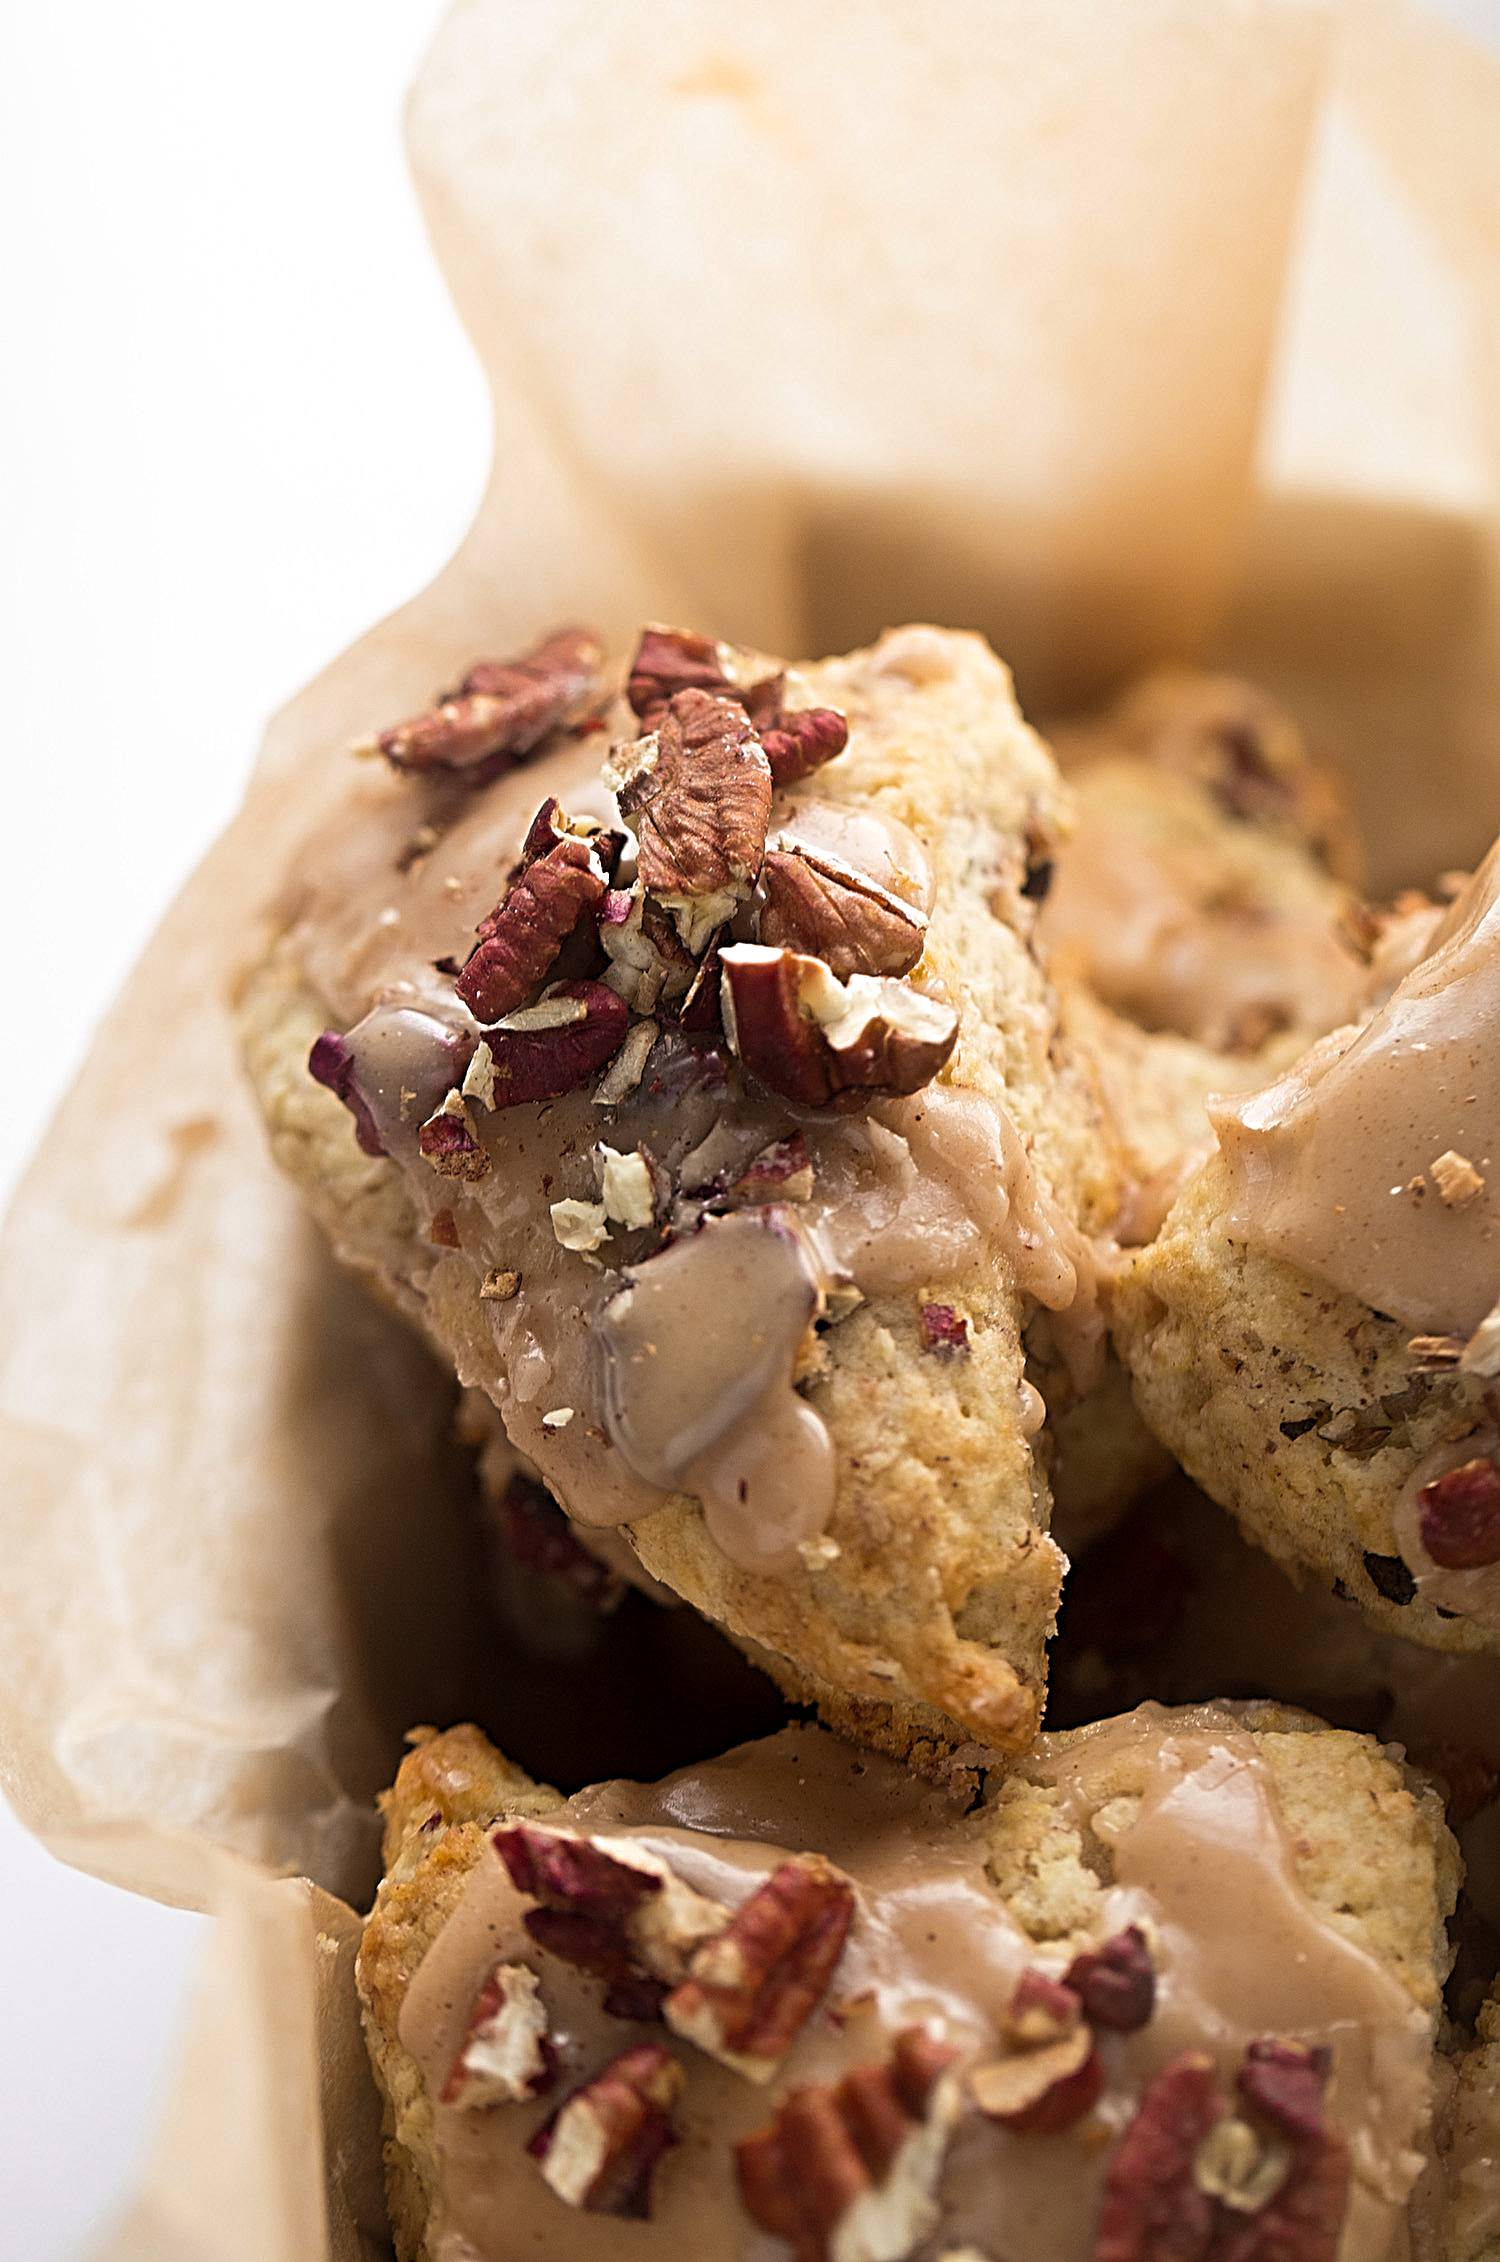 Maple Glazed Cinnamon Pecan Scones: tender, buttery scones filled with toasted pecans and topped with a maple-cinnamon glaze. | TrufflesandTrends.com